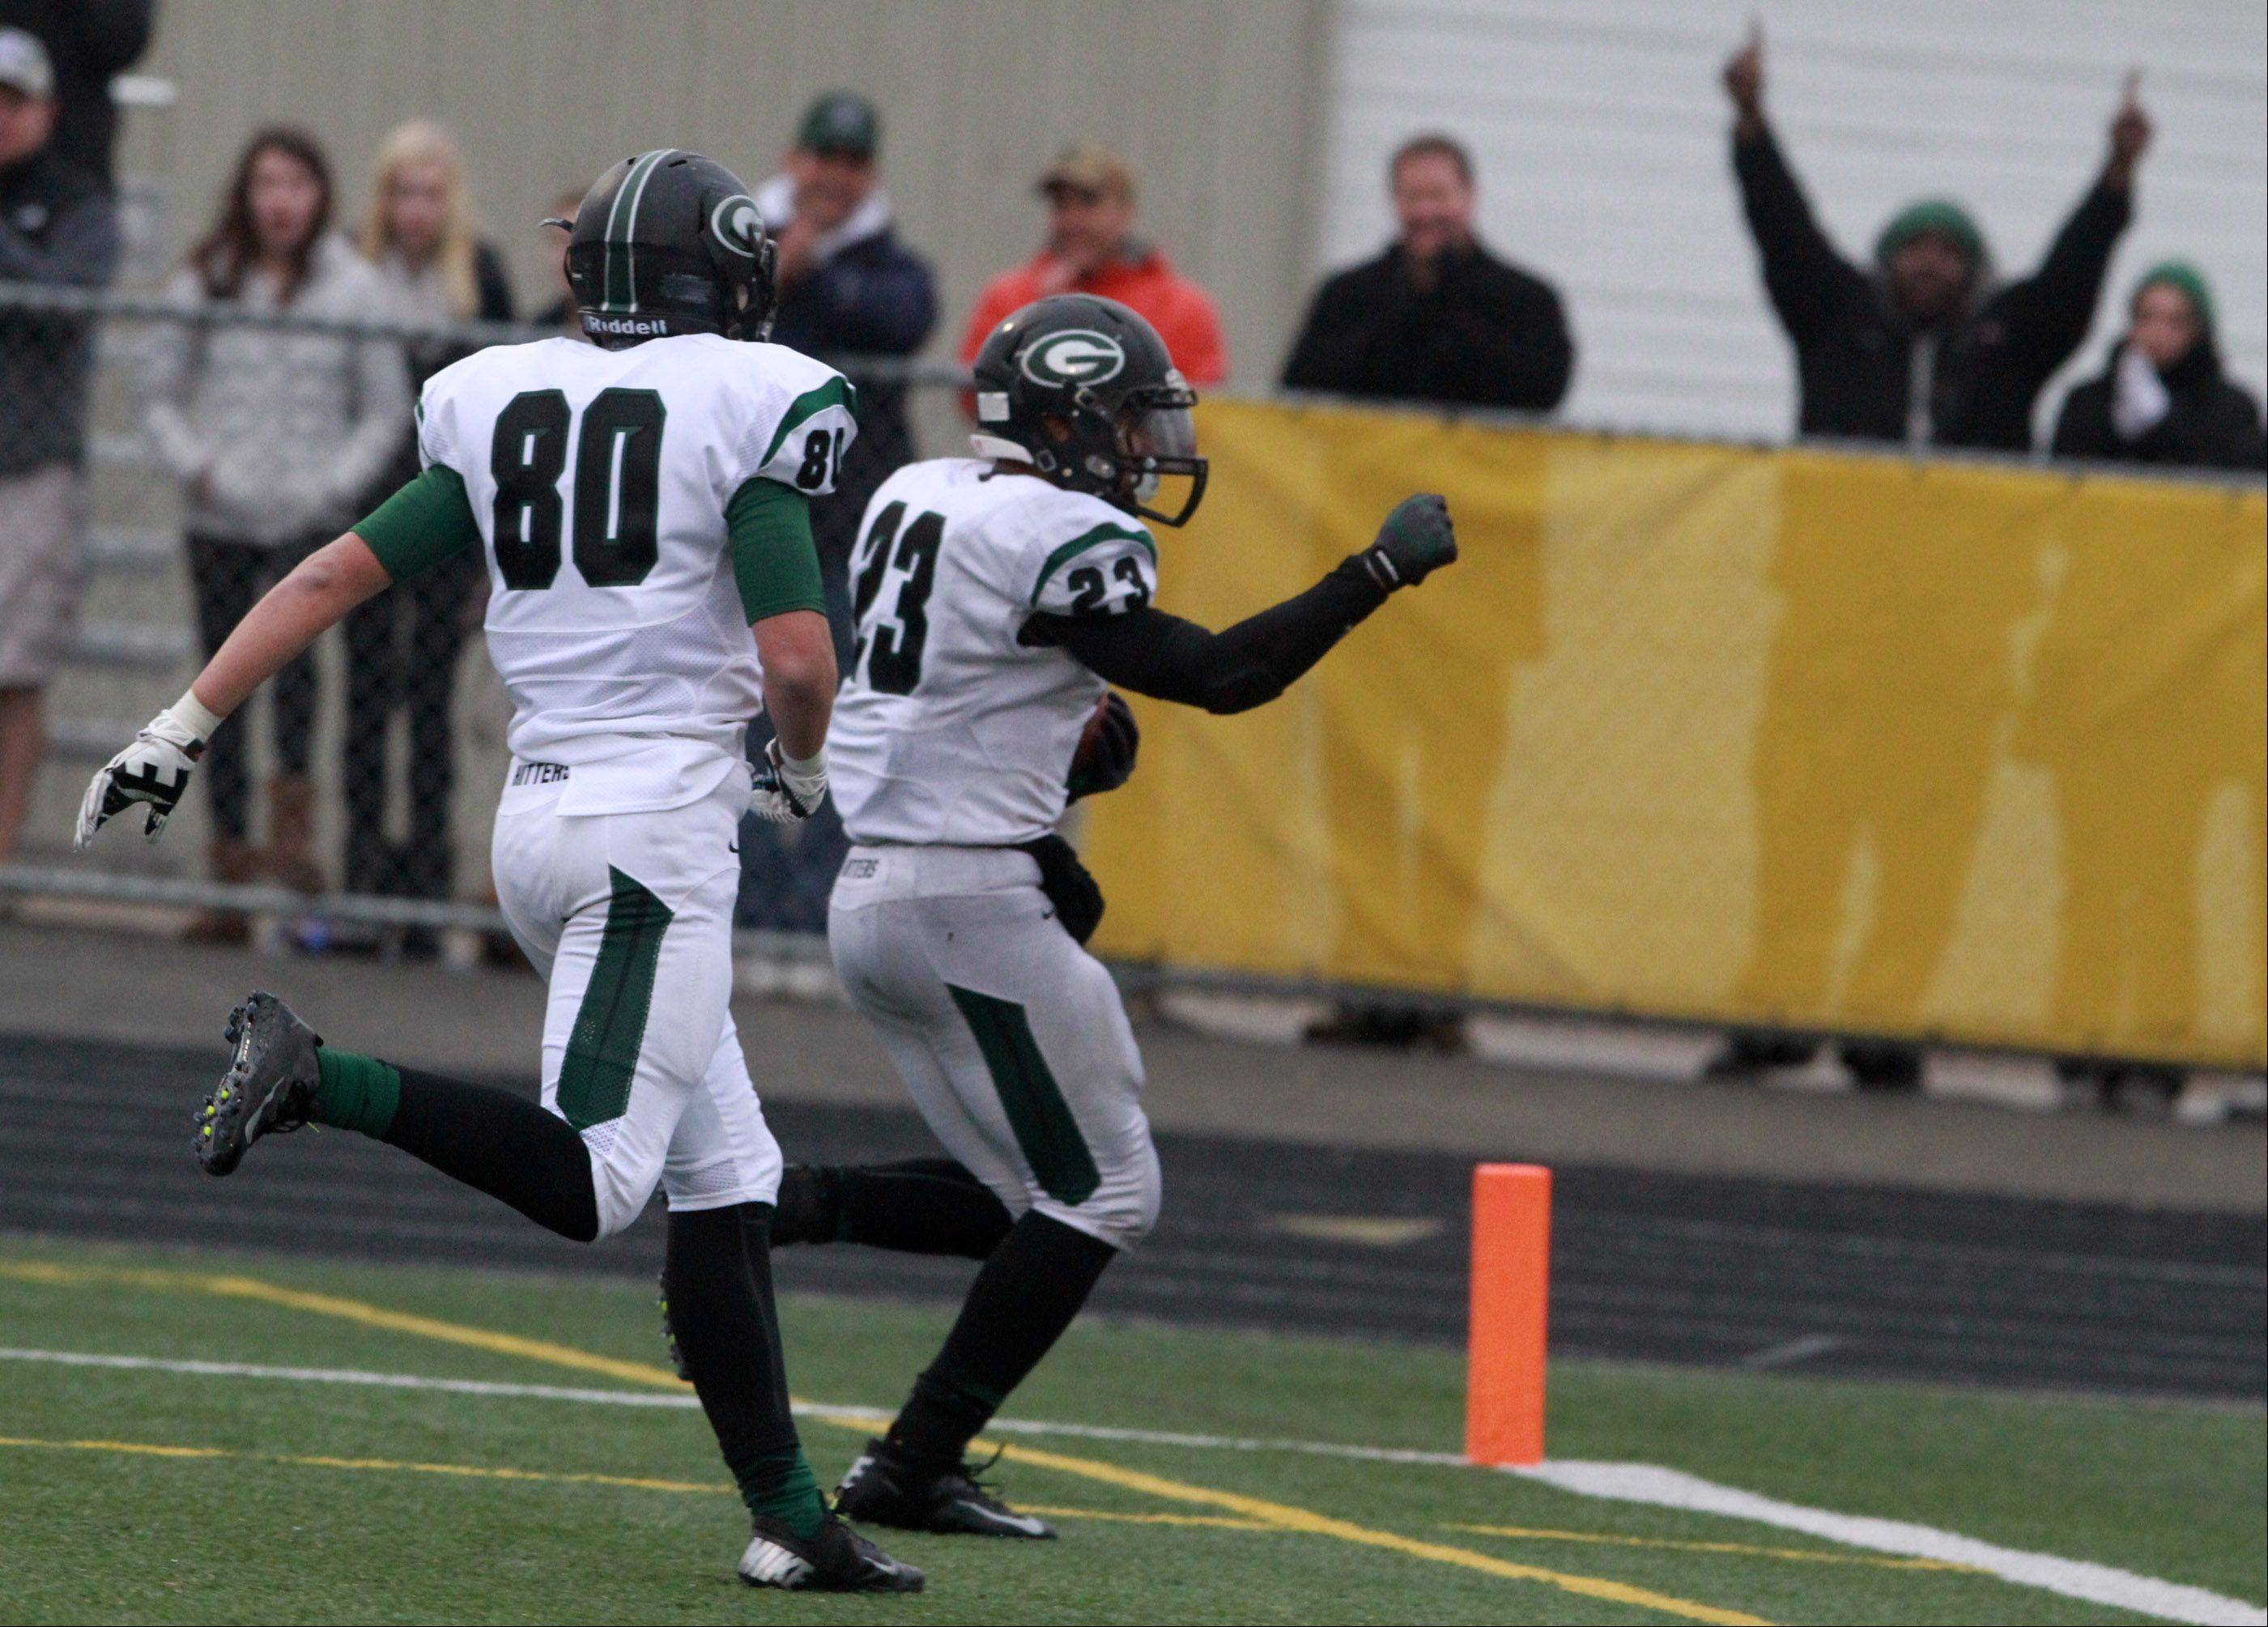 Glenbard West running back Scott Andrews celebrates running for a touchdown against Schaumburg in a quarterfinal playoff game on Saturday, November 16th, in Schaumburg.